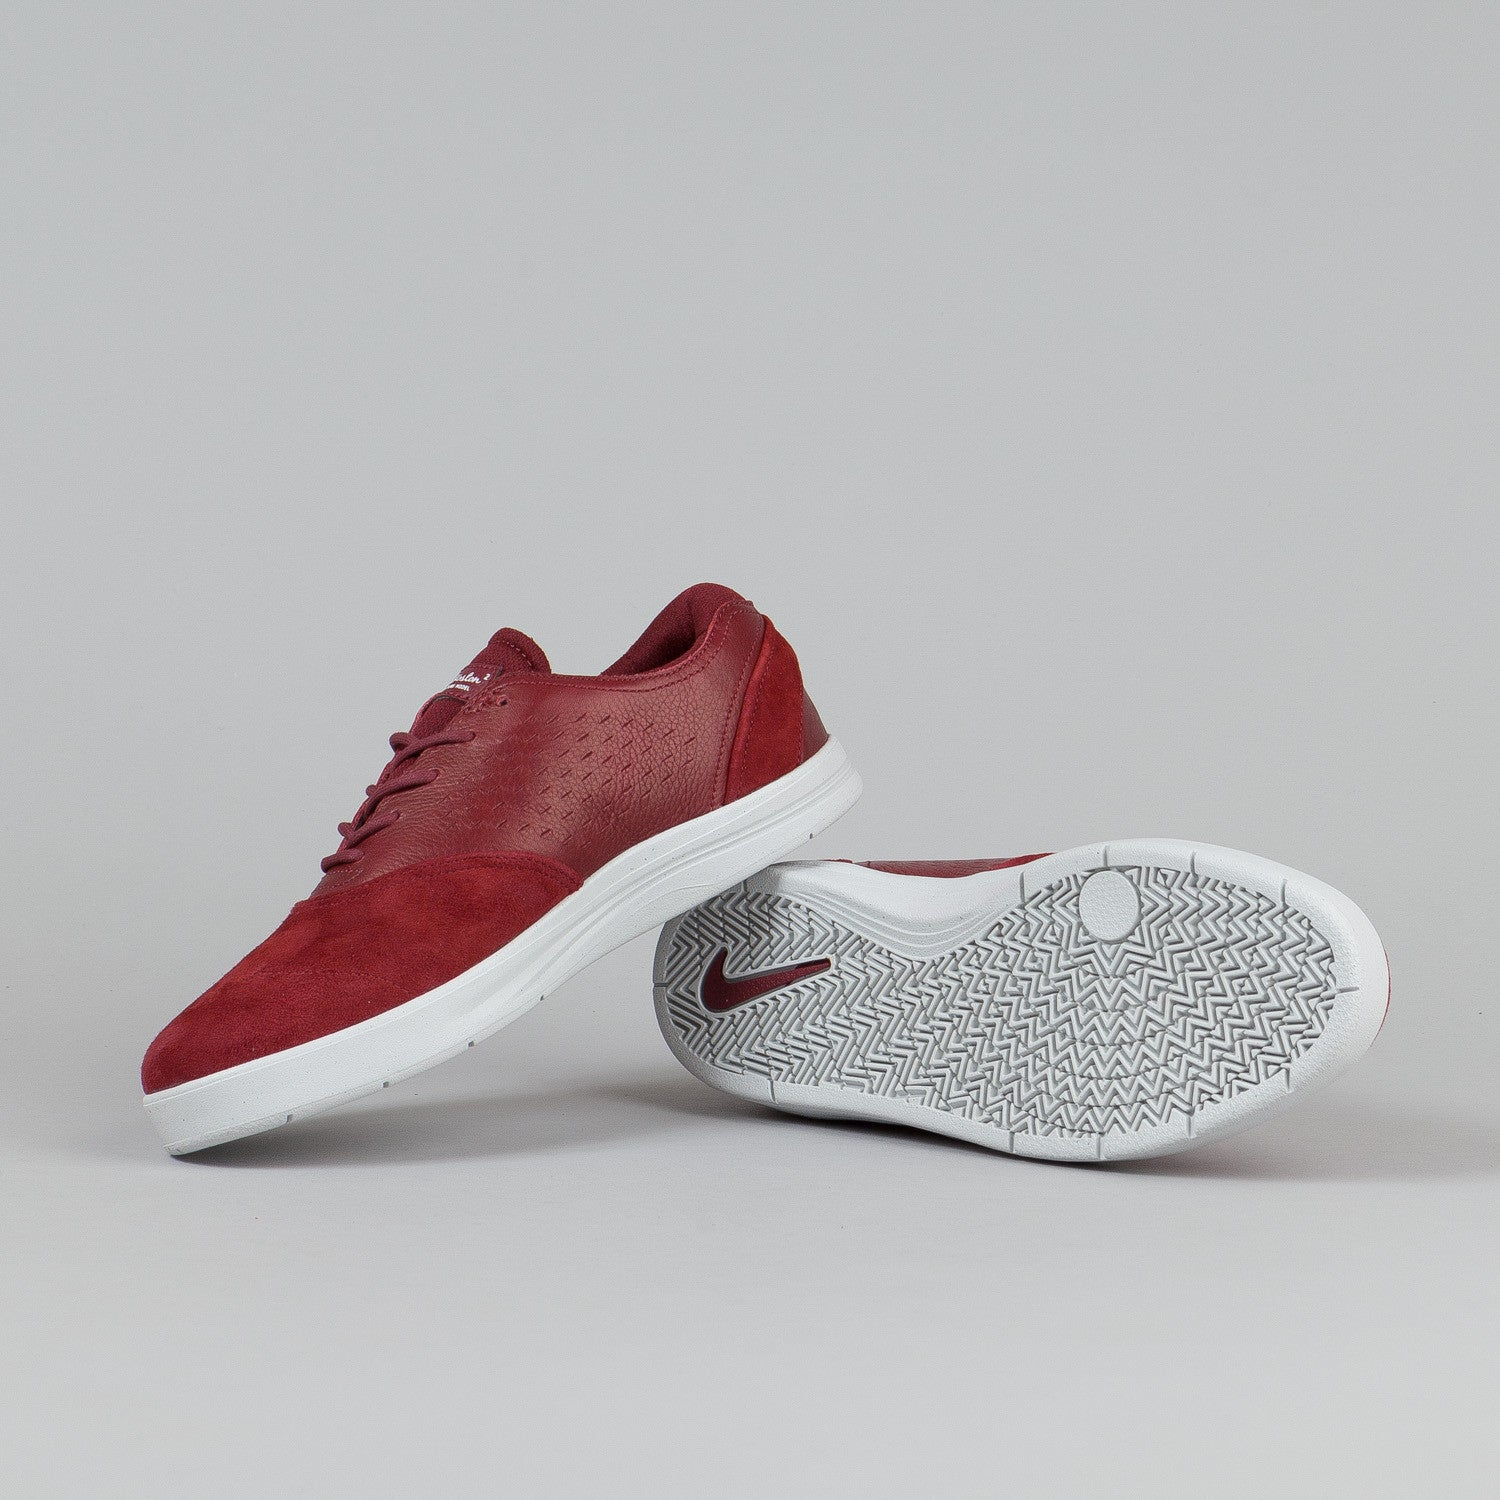 Nike SB Eric Koston 2 Premium Team Red/Team Red - Light Ash Grey